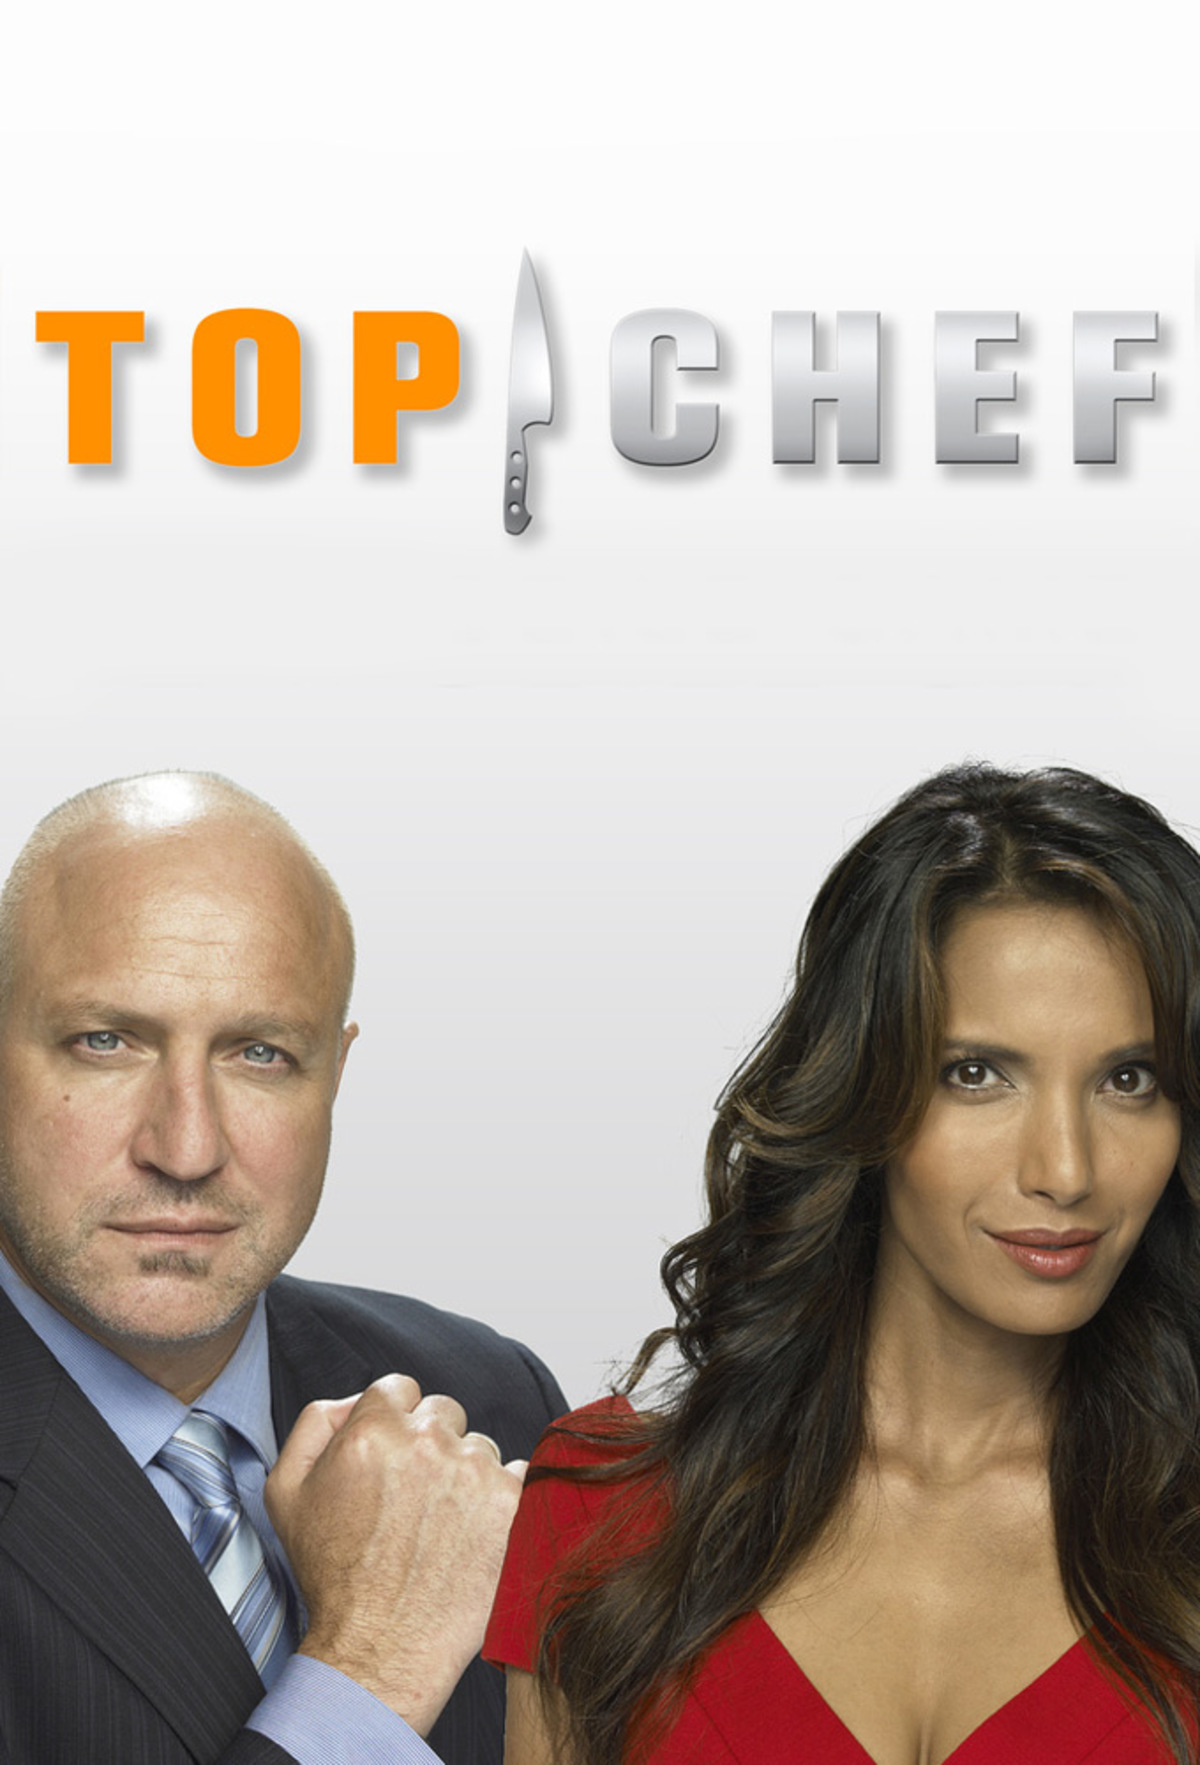 Top Chef - Season 17 Episode 11 - Michael's Santa Monica